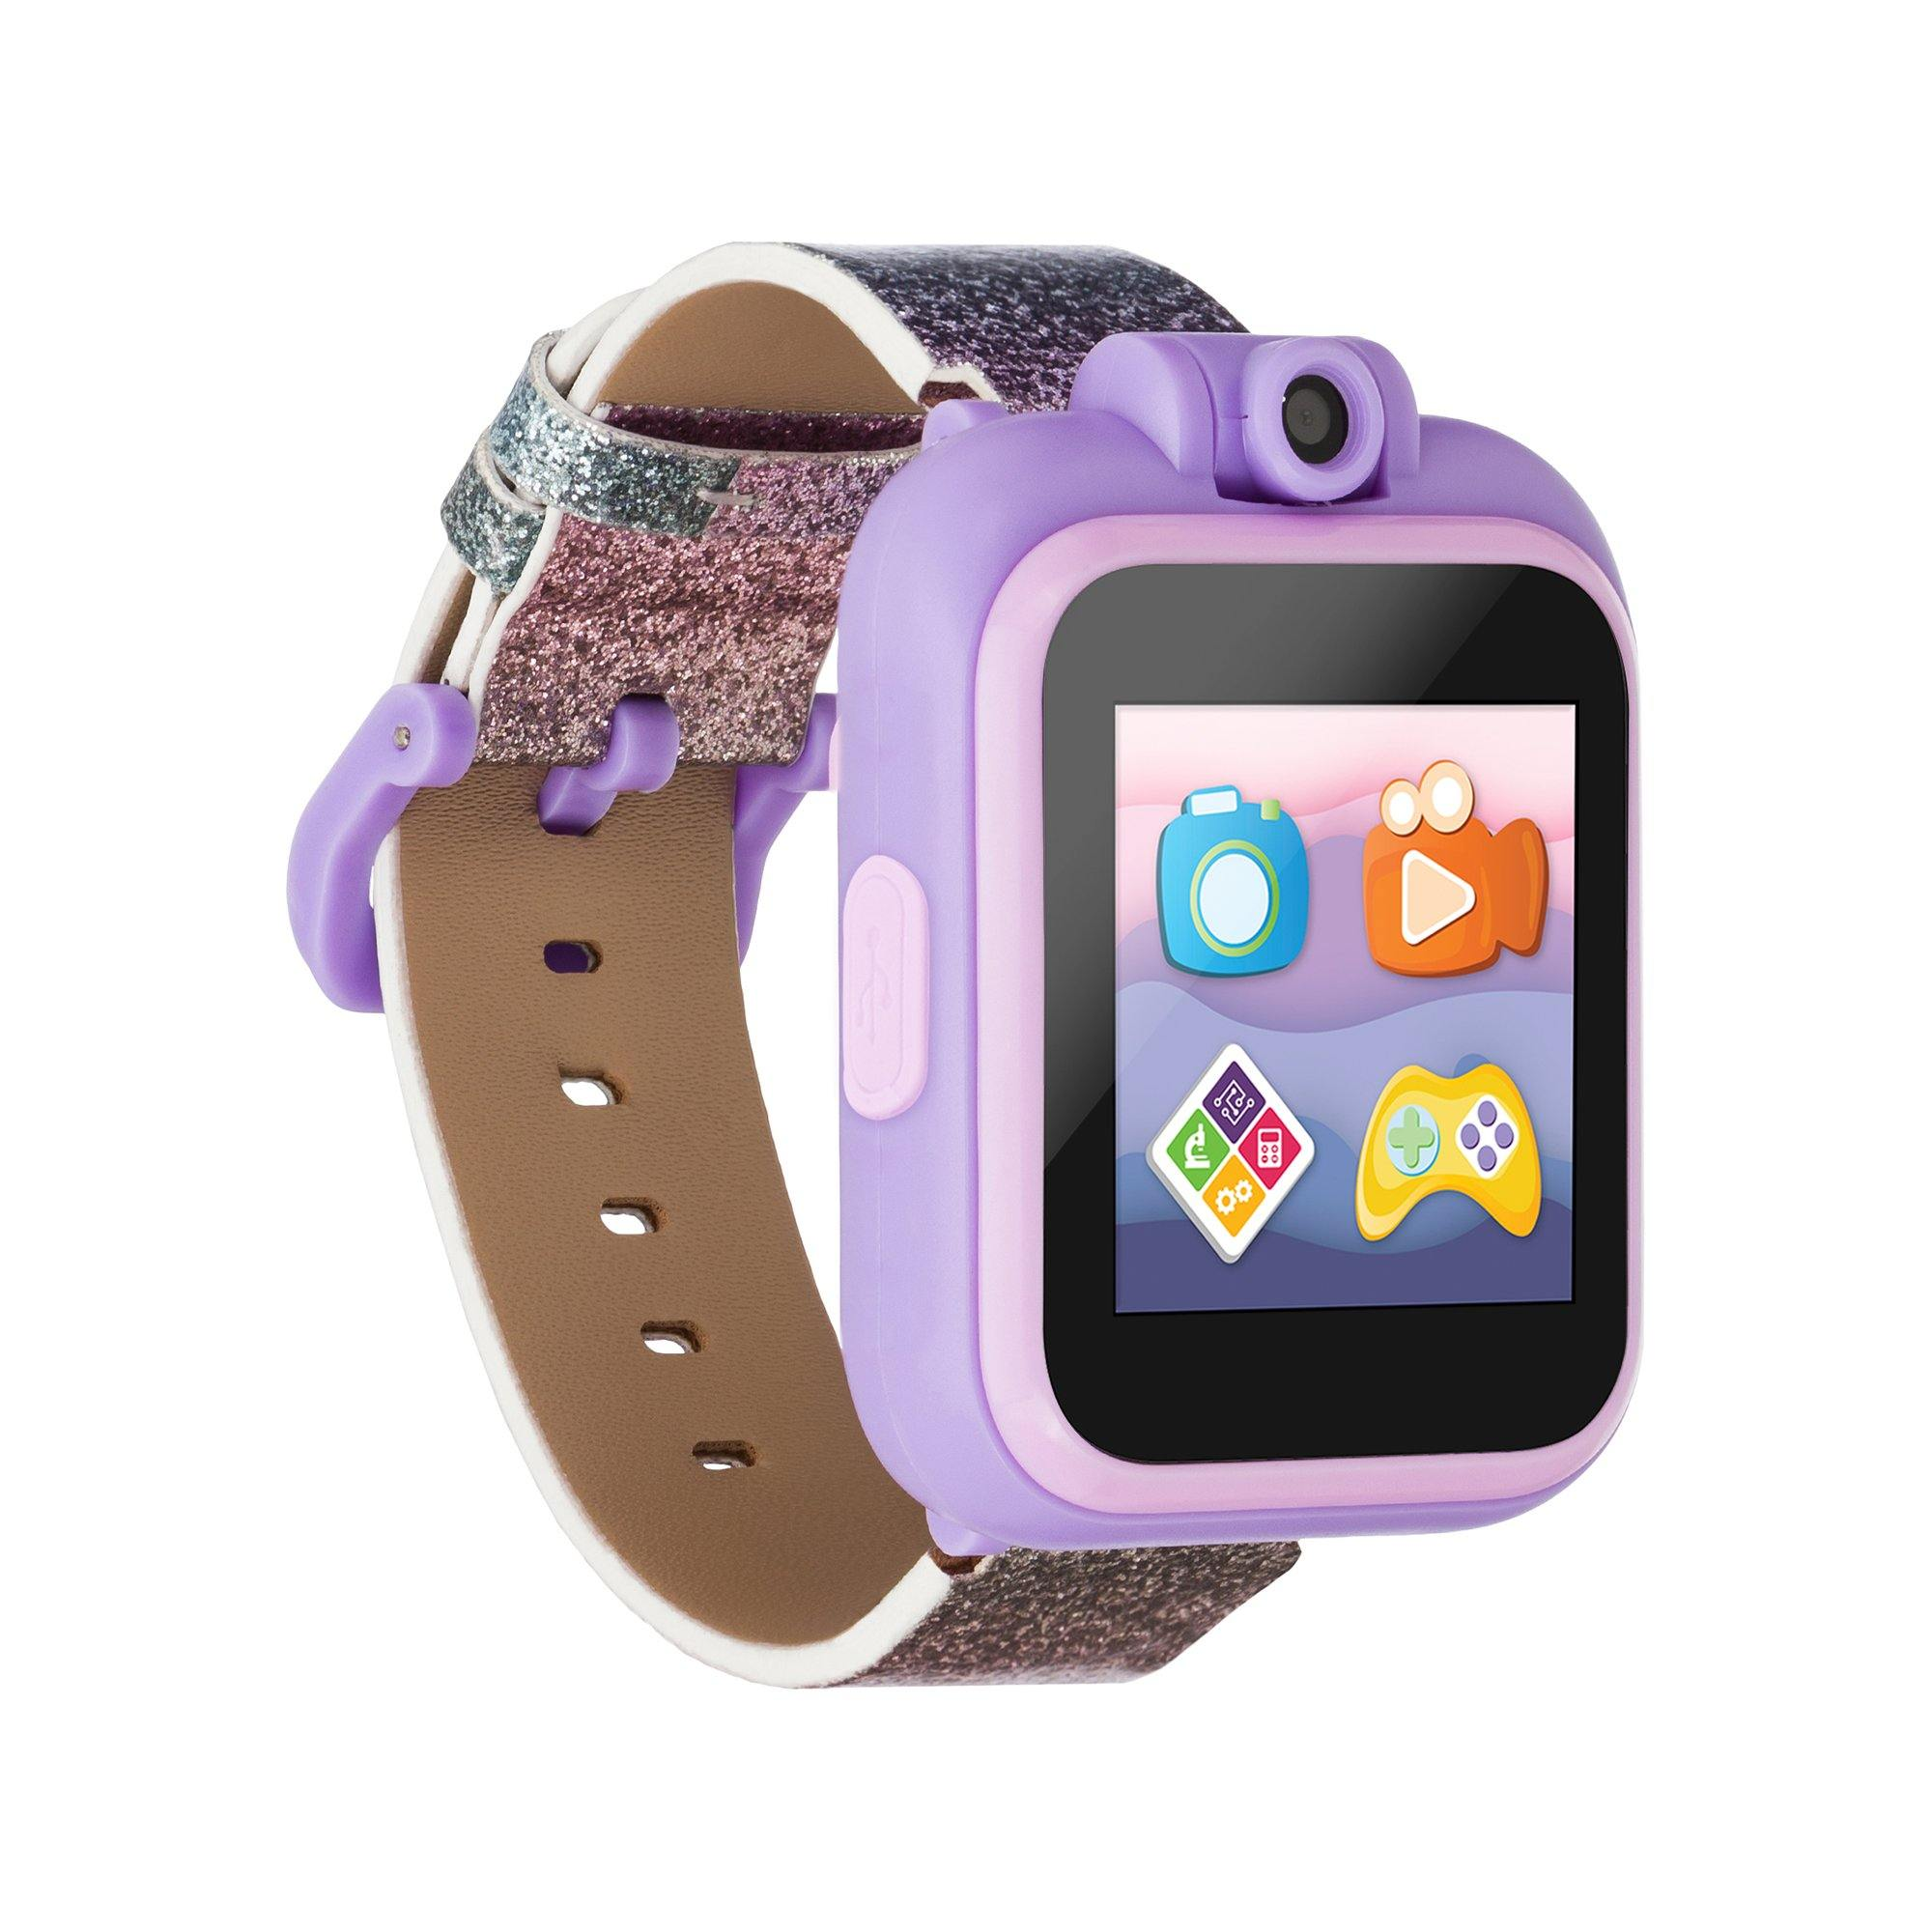 PlayZoom 2 Kids Smartwatch: Pink/Purple Glitter